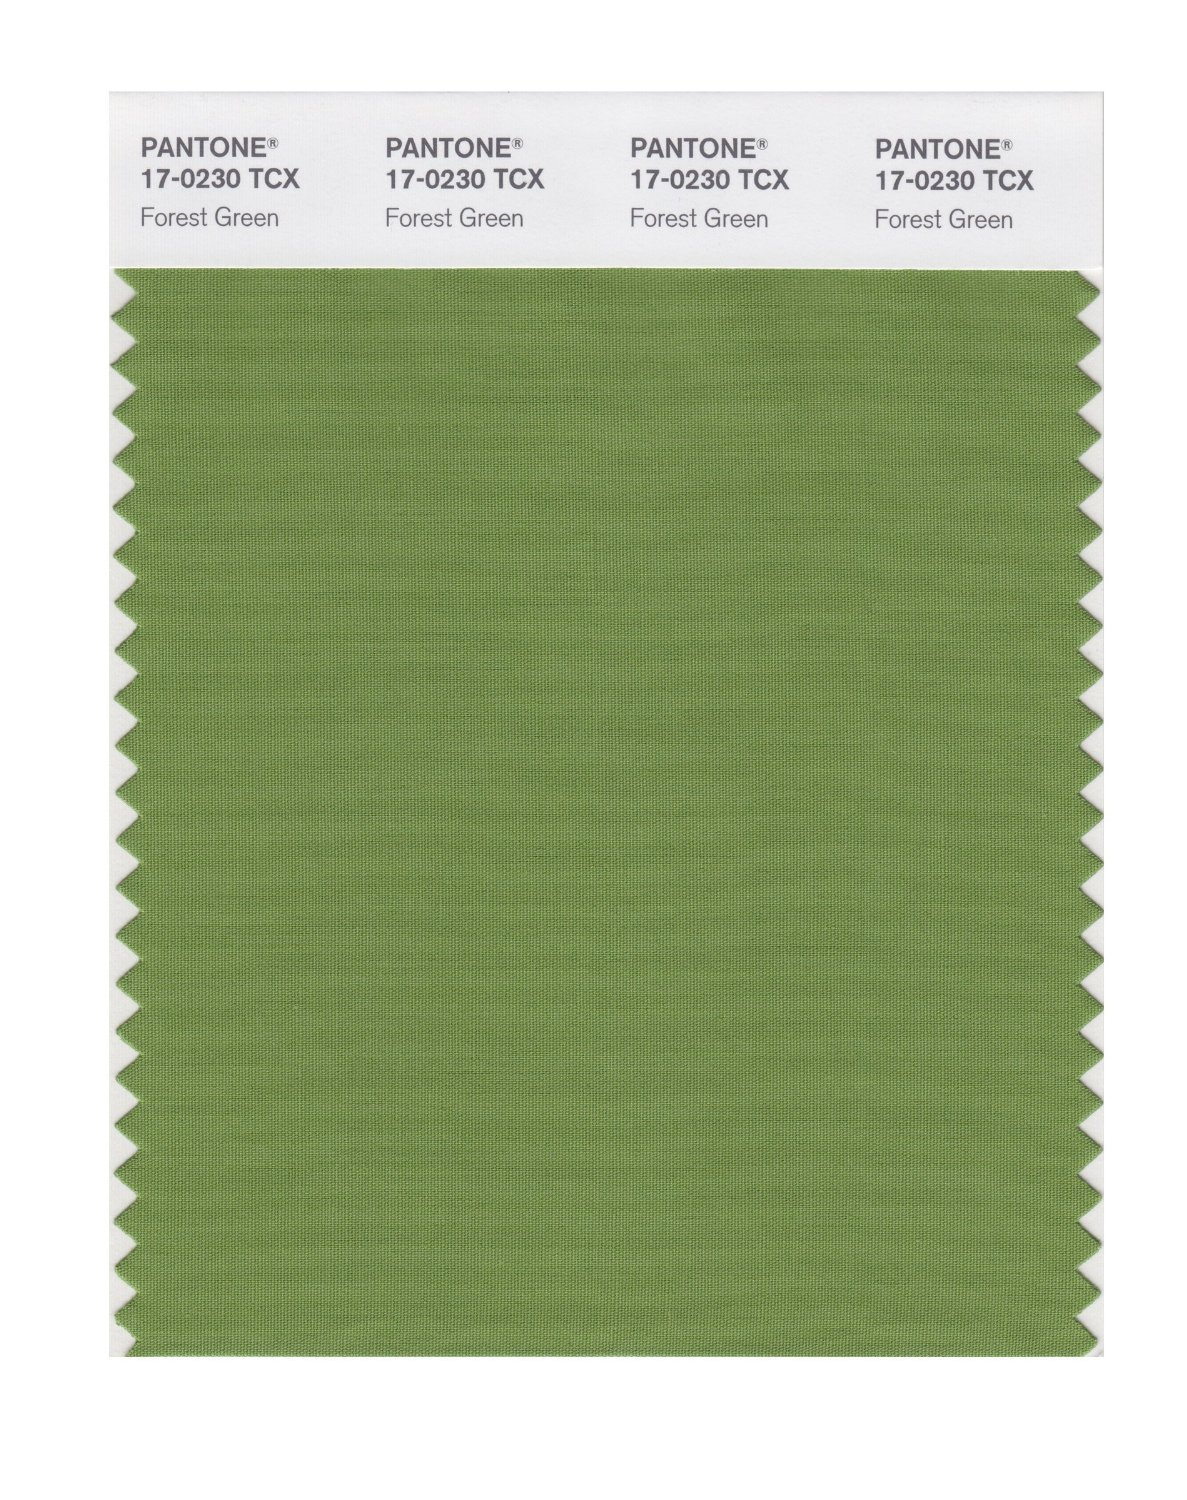 Pantone Smart Swatch 17-0230 Forest Green